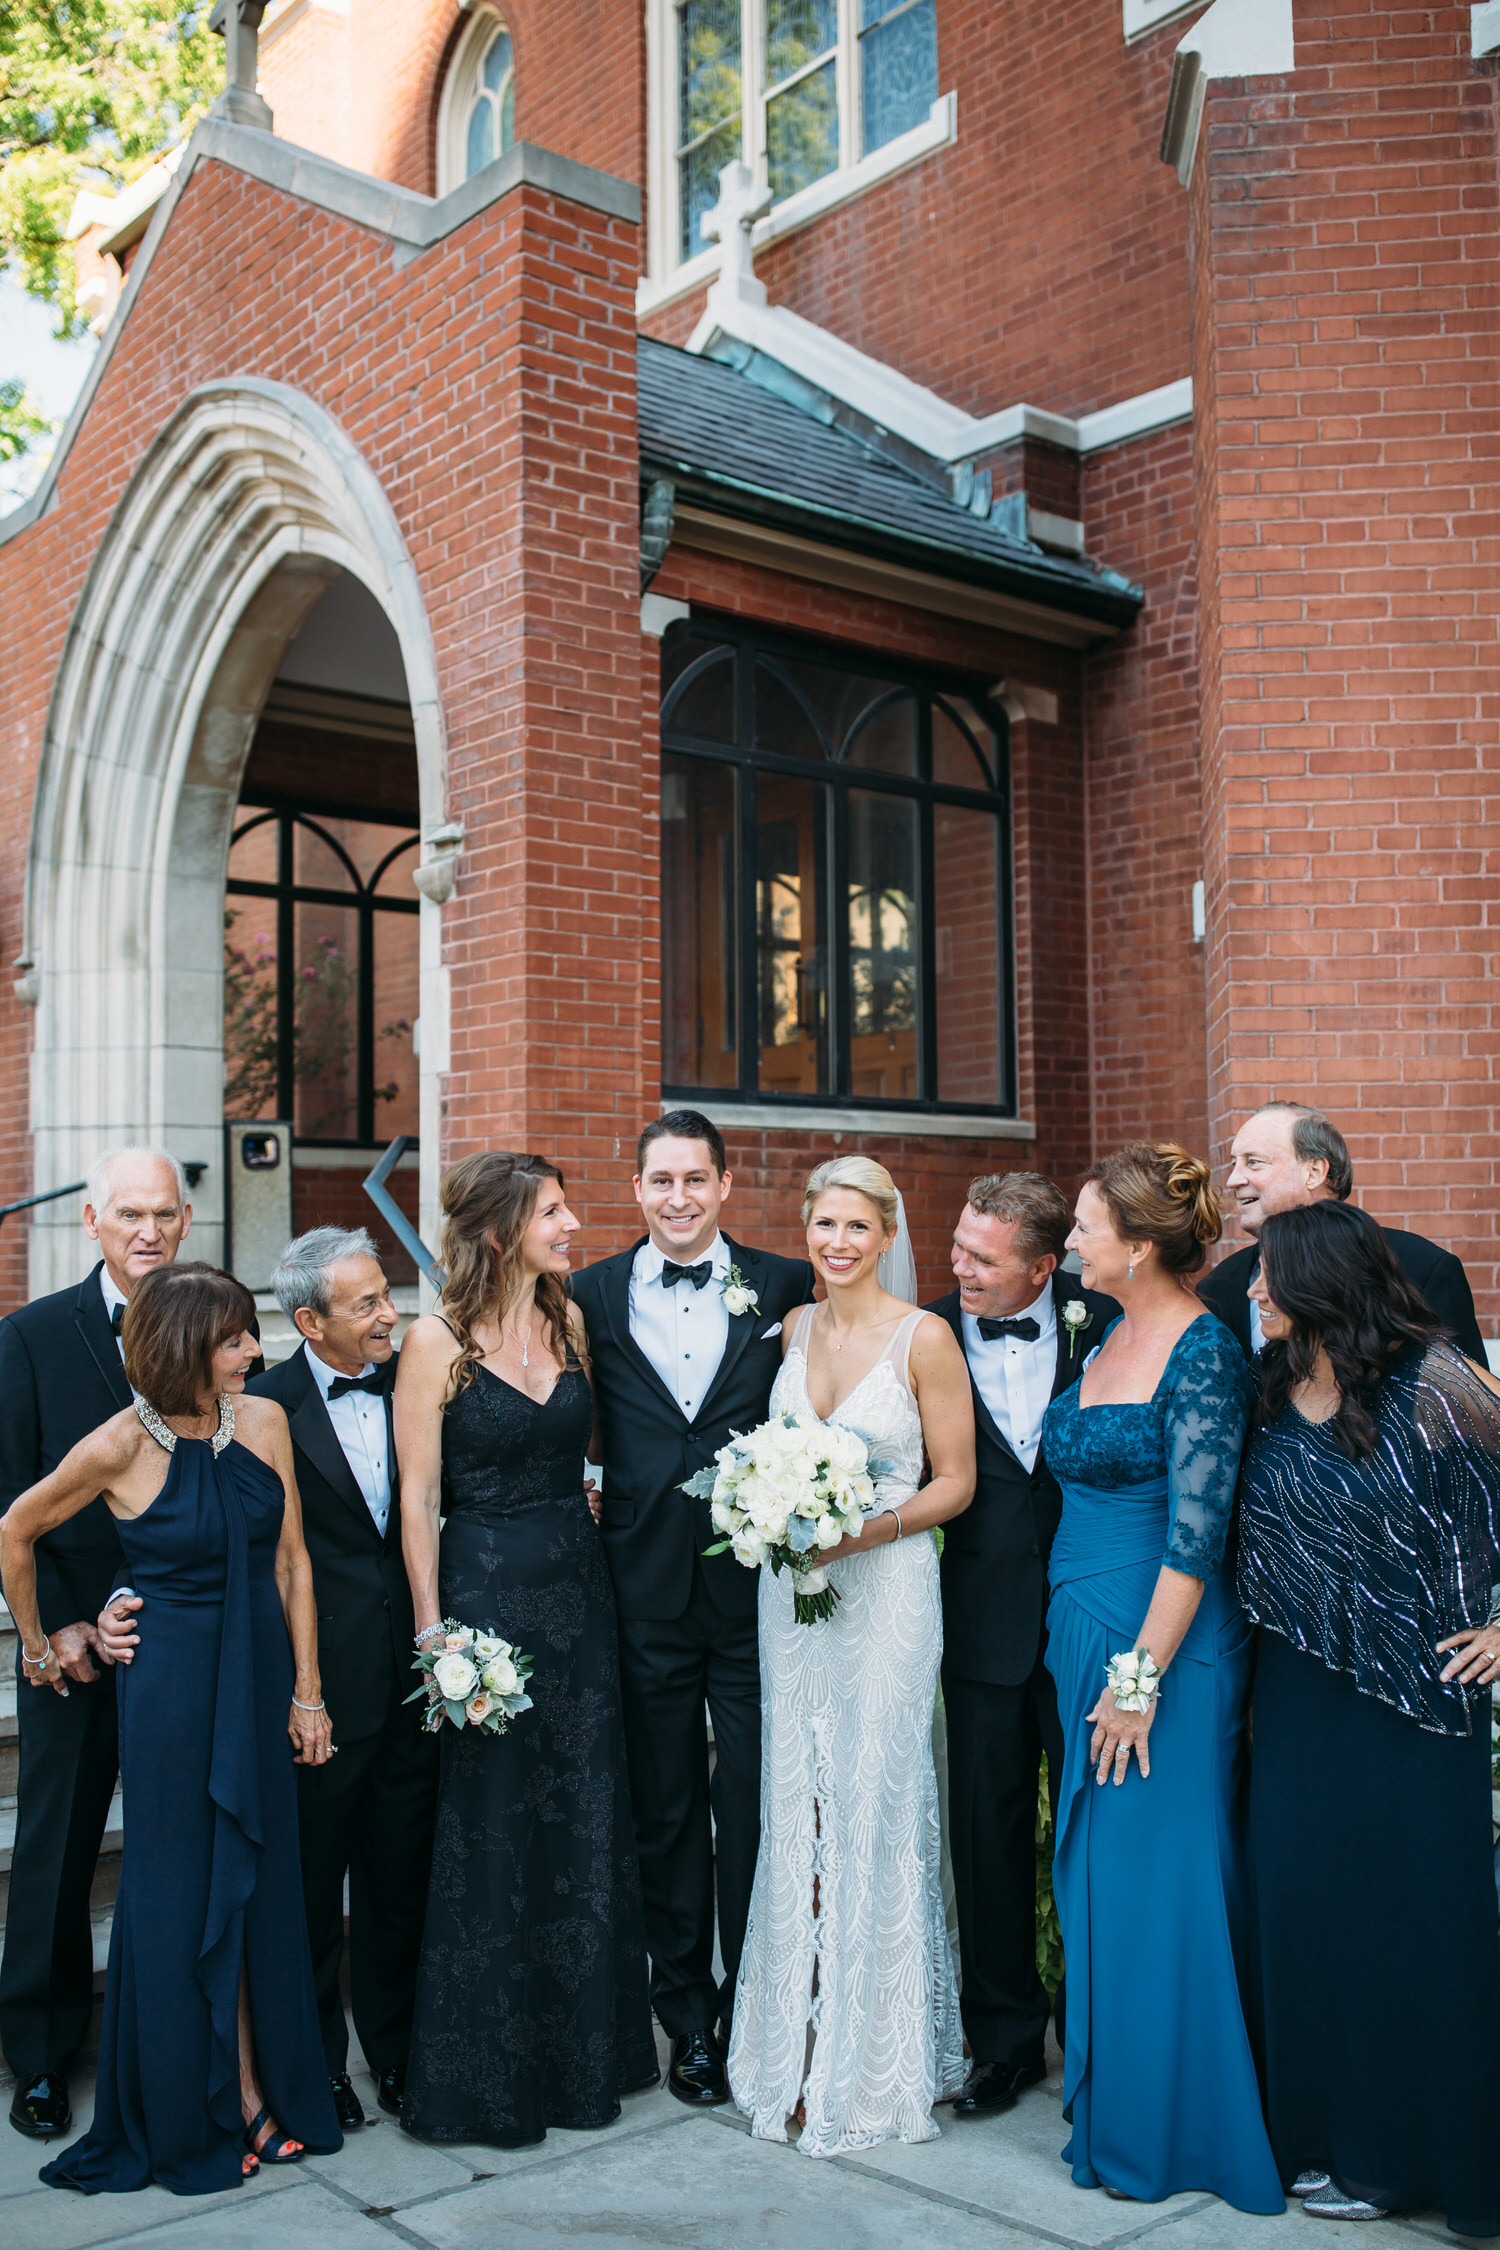 Wedding party photos, group photos at a wedding, relaxed wedding photos, Denver Wedding Photographer, Family formals